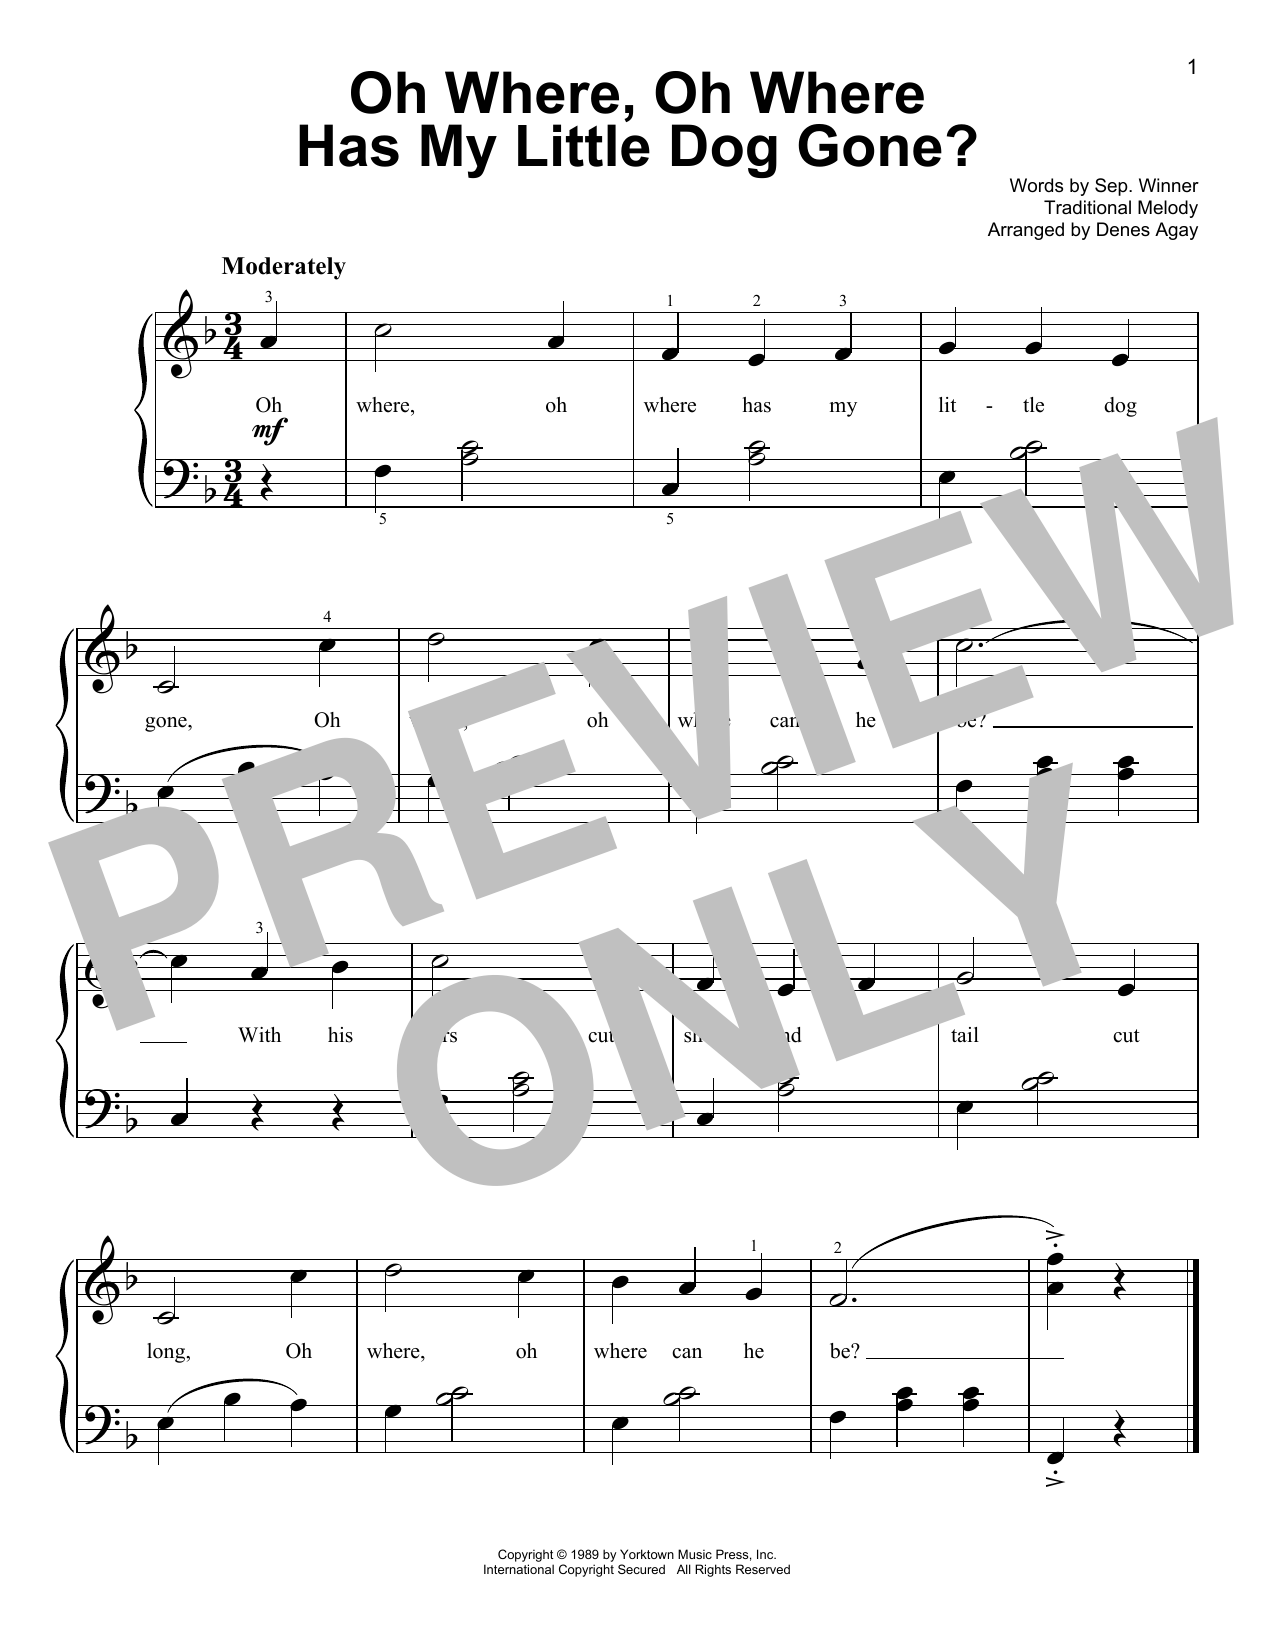 Oh Where, Oh Where Has My Little Dog Gone (arr. Denes Agay) (Easy Piano)